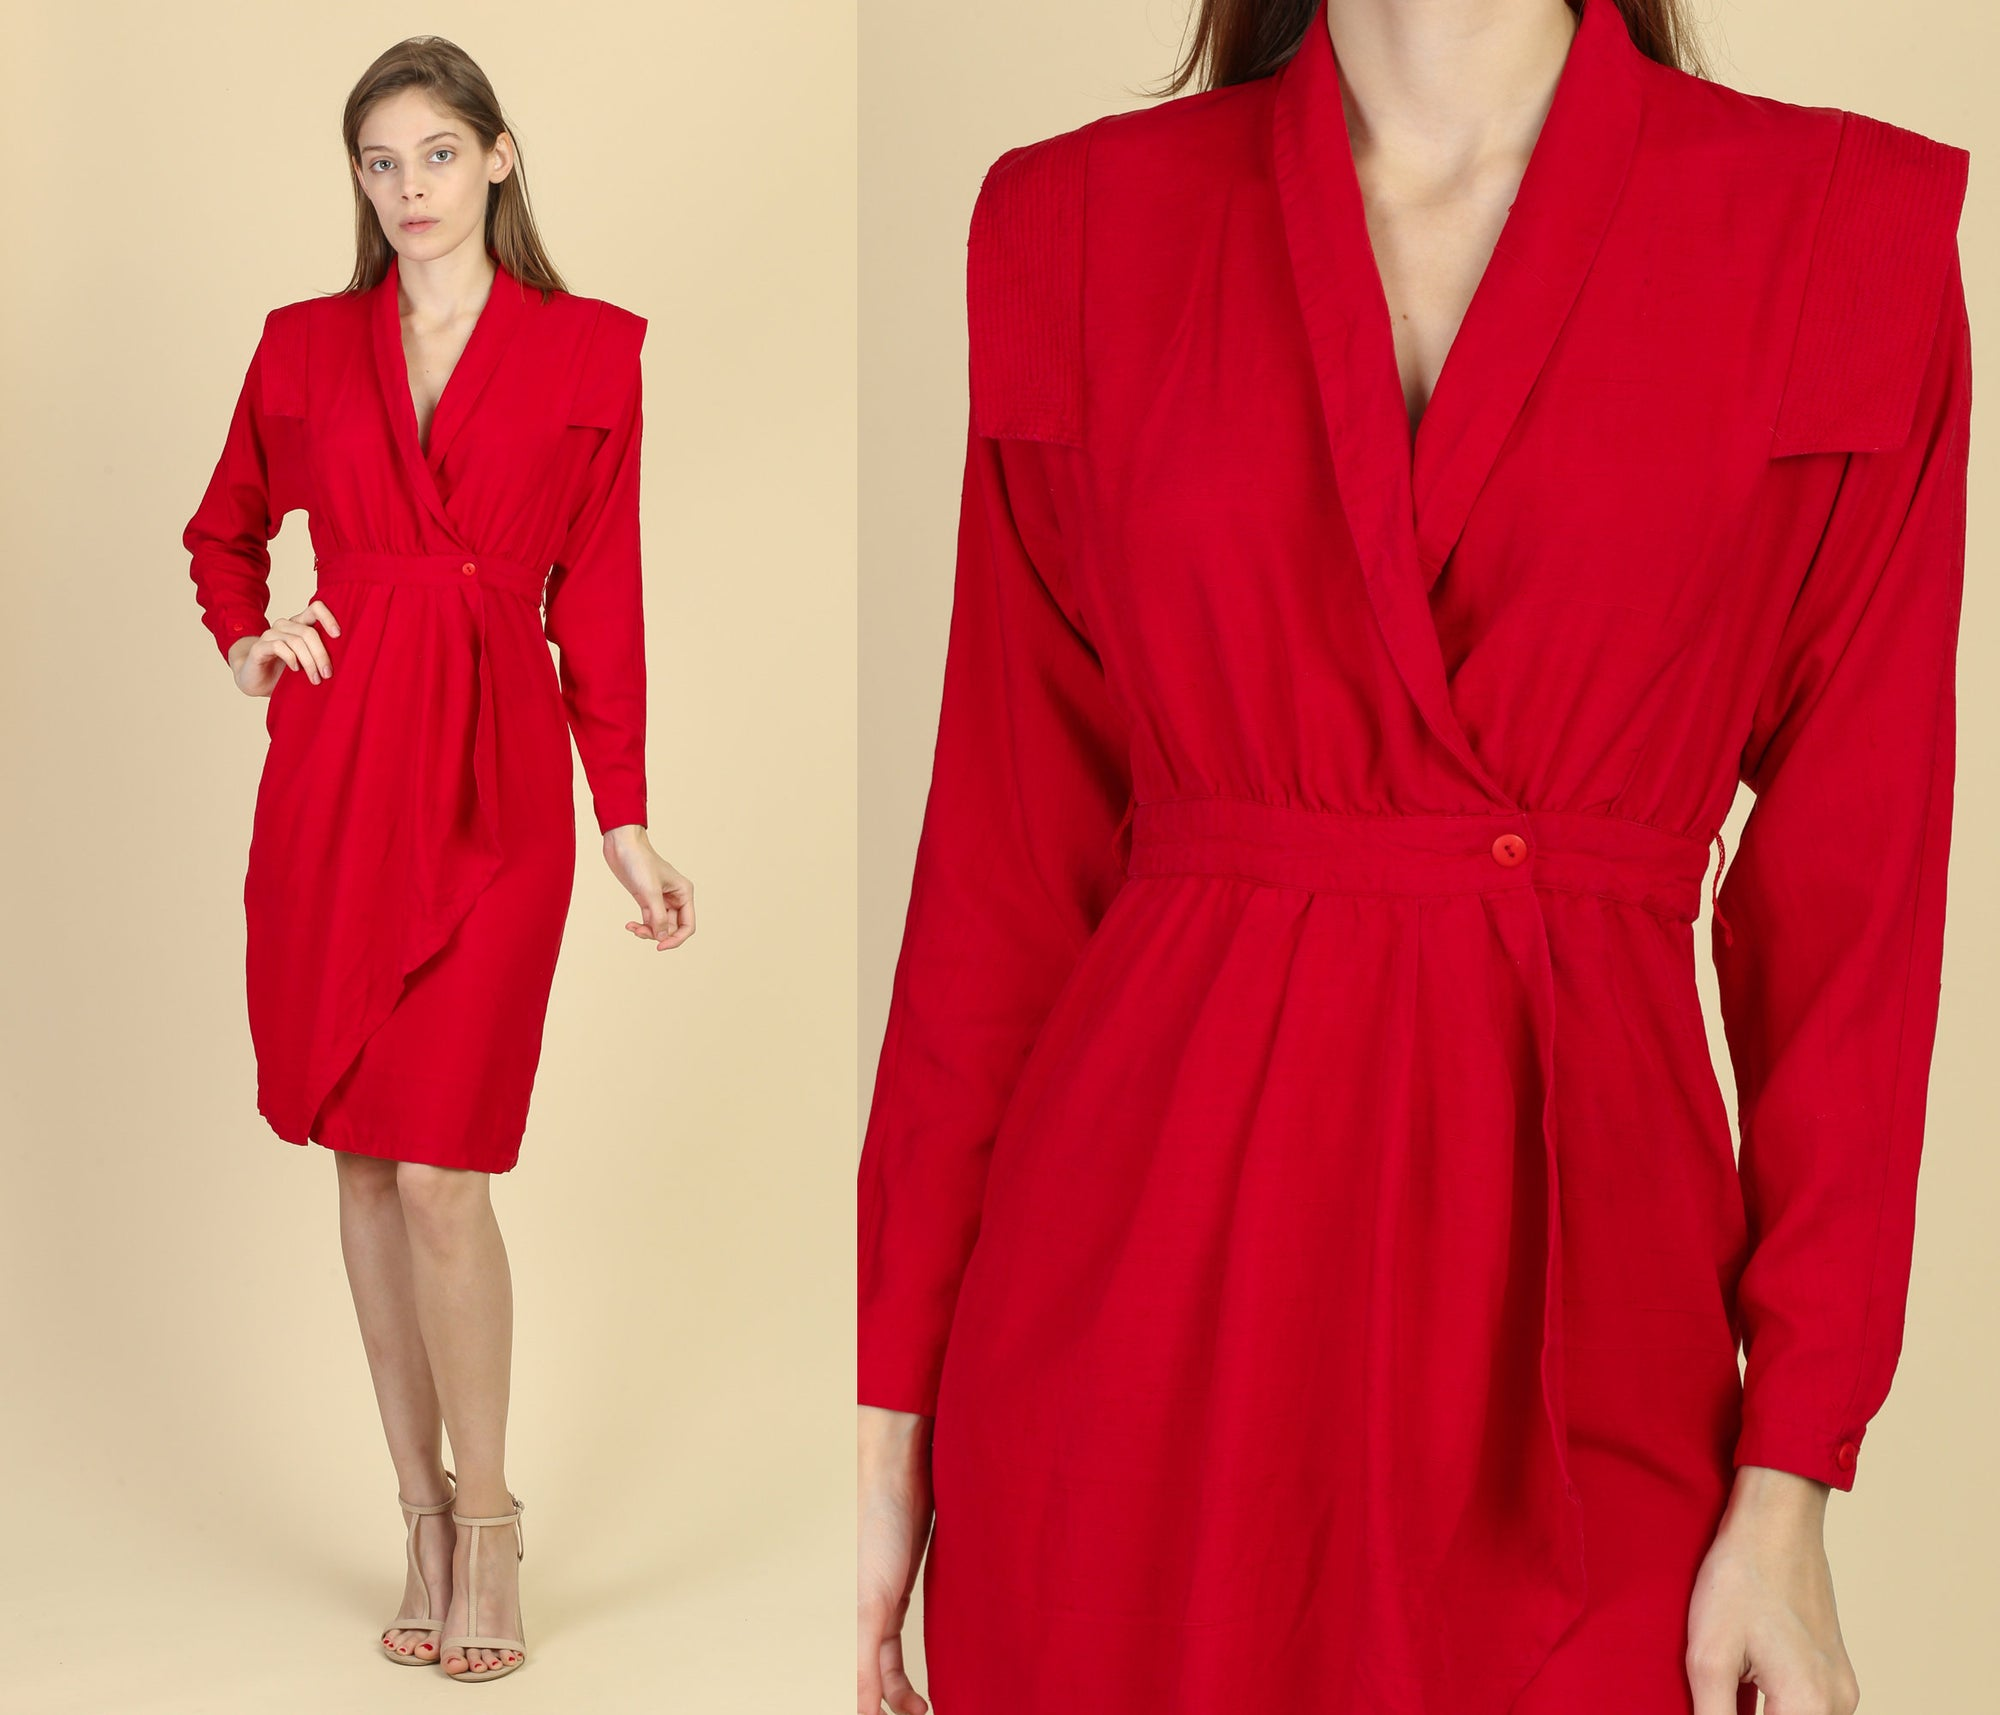 80s Red Working Girl Dress - Extra Small